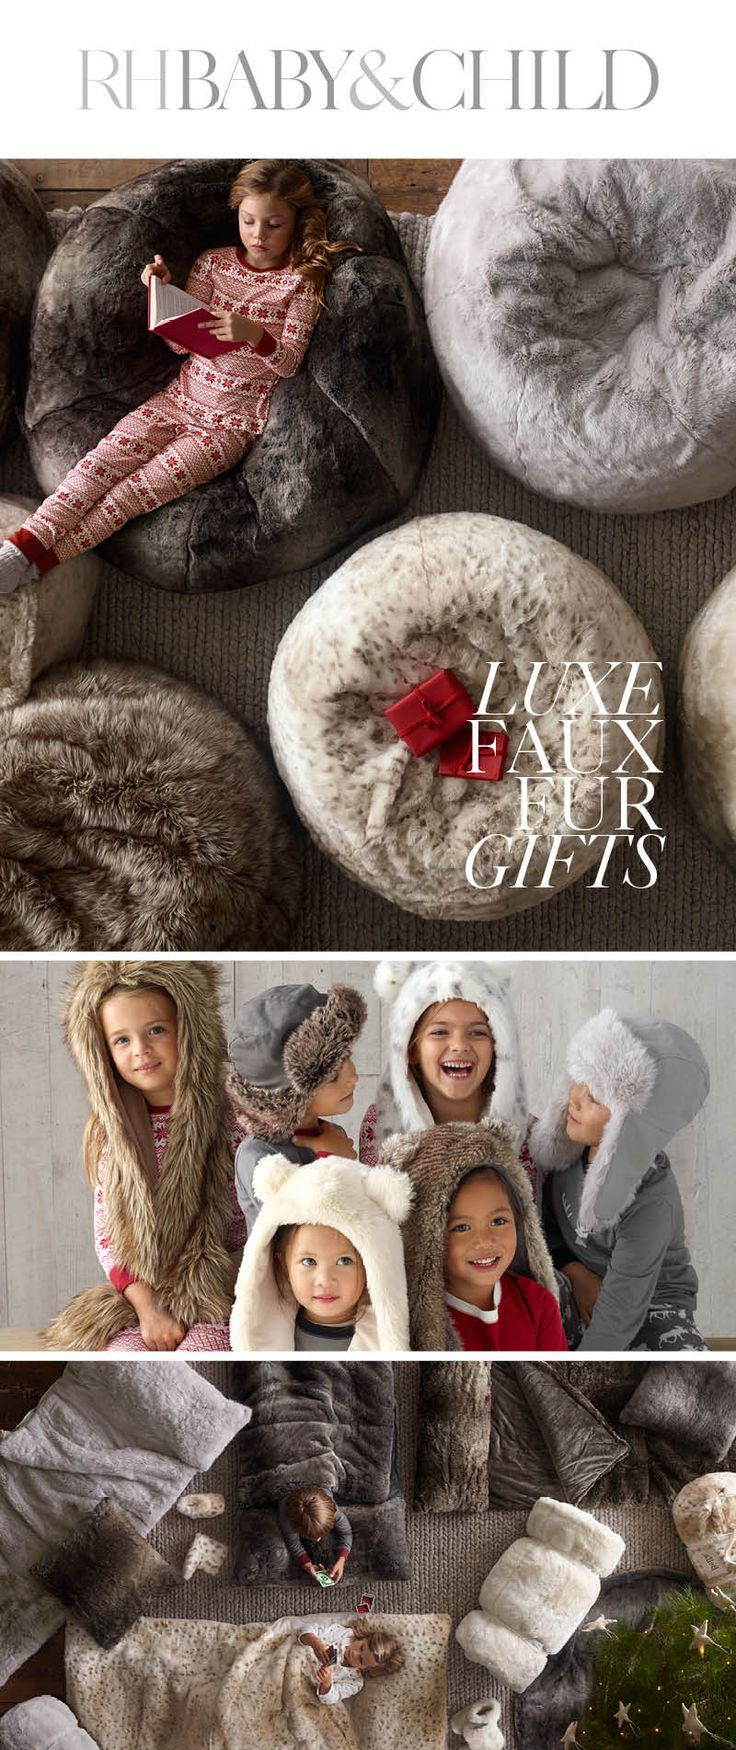 Unsurpassed in softness, our luxe faux fur sleeping bags, bean bags and apparel swathe your wee one in warmth and coziness during the cold winter months. Shop all luxe faux fur gifts at RH Baby & Child. Save 25% on everything with the RH Members Program.